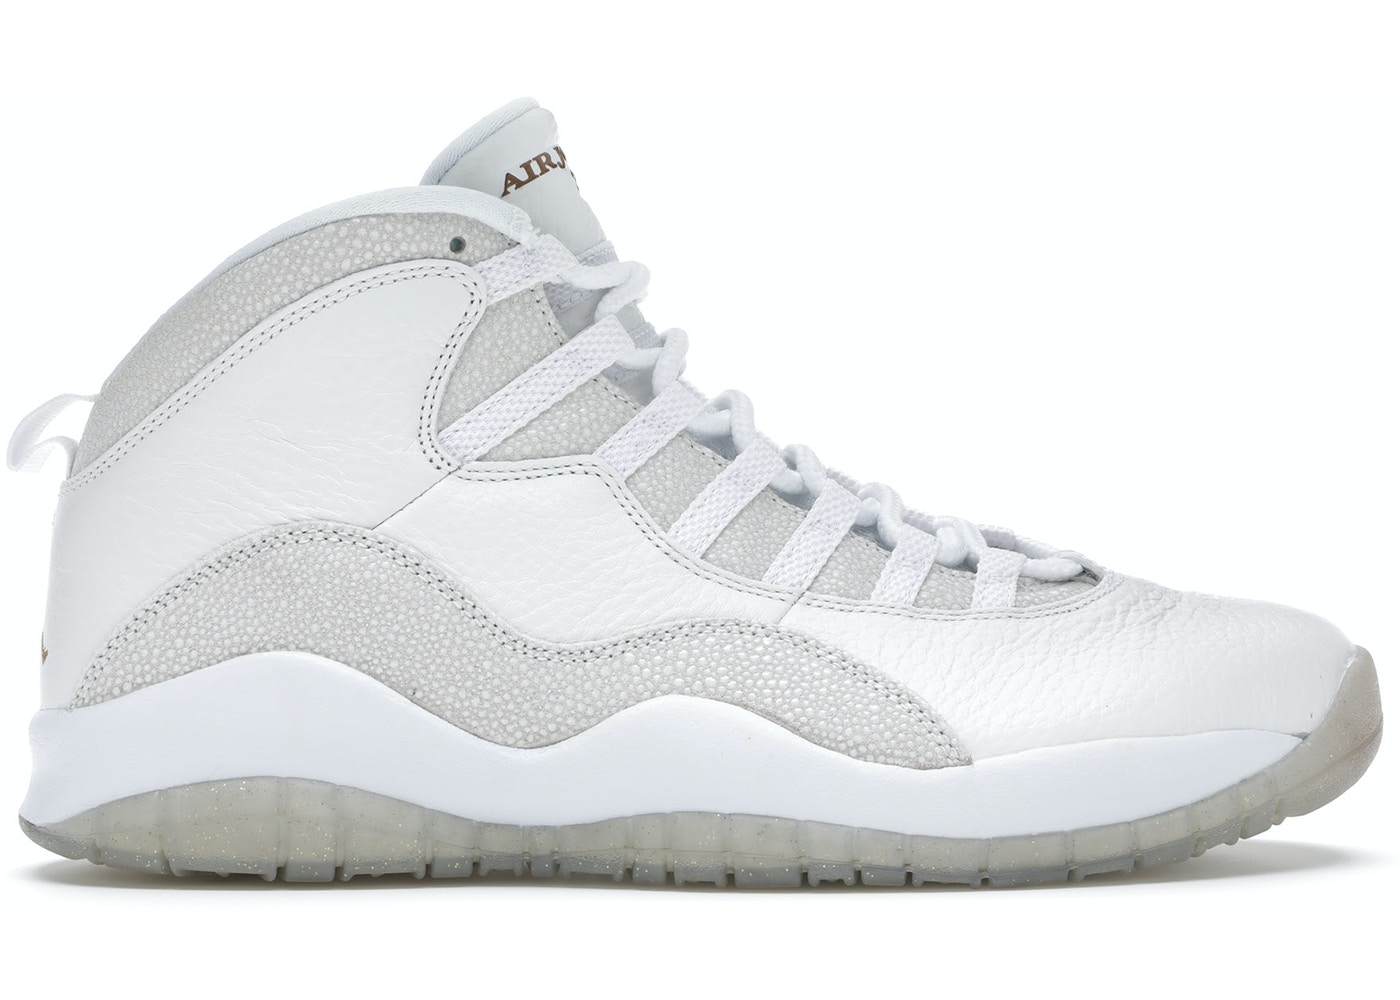 3be705be9036 Jordan 10 Retro Drake OVO White - 819955-100